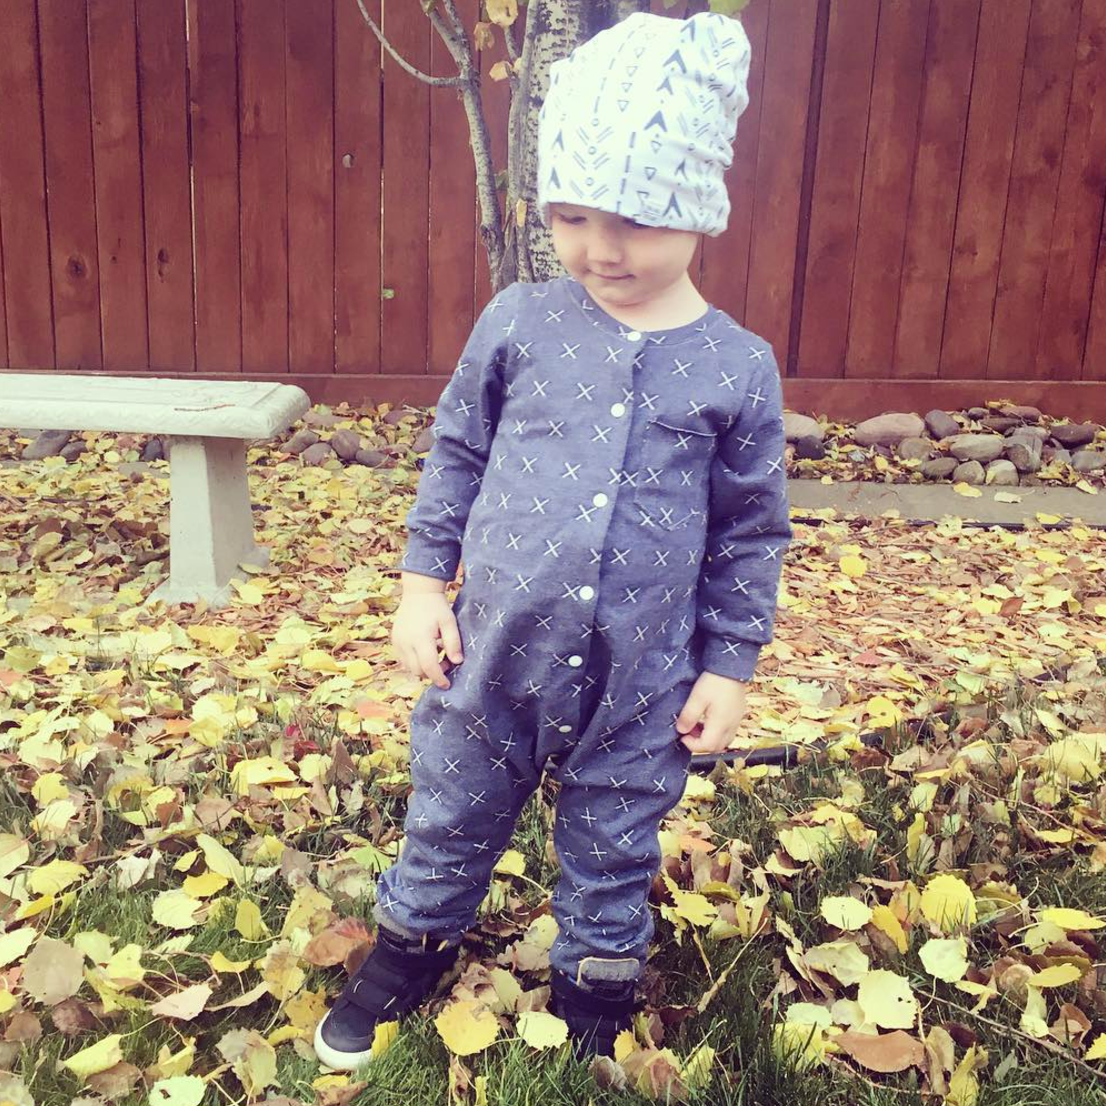 Darling Designz - Baby and toddler apparel